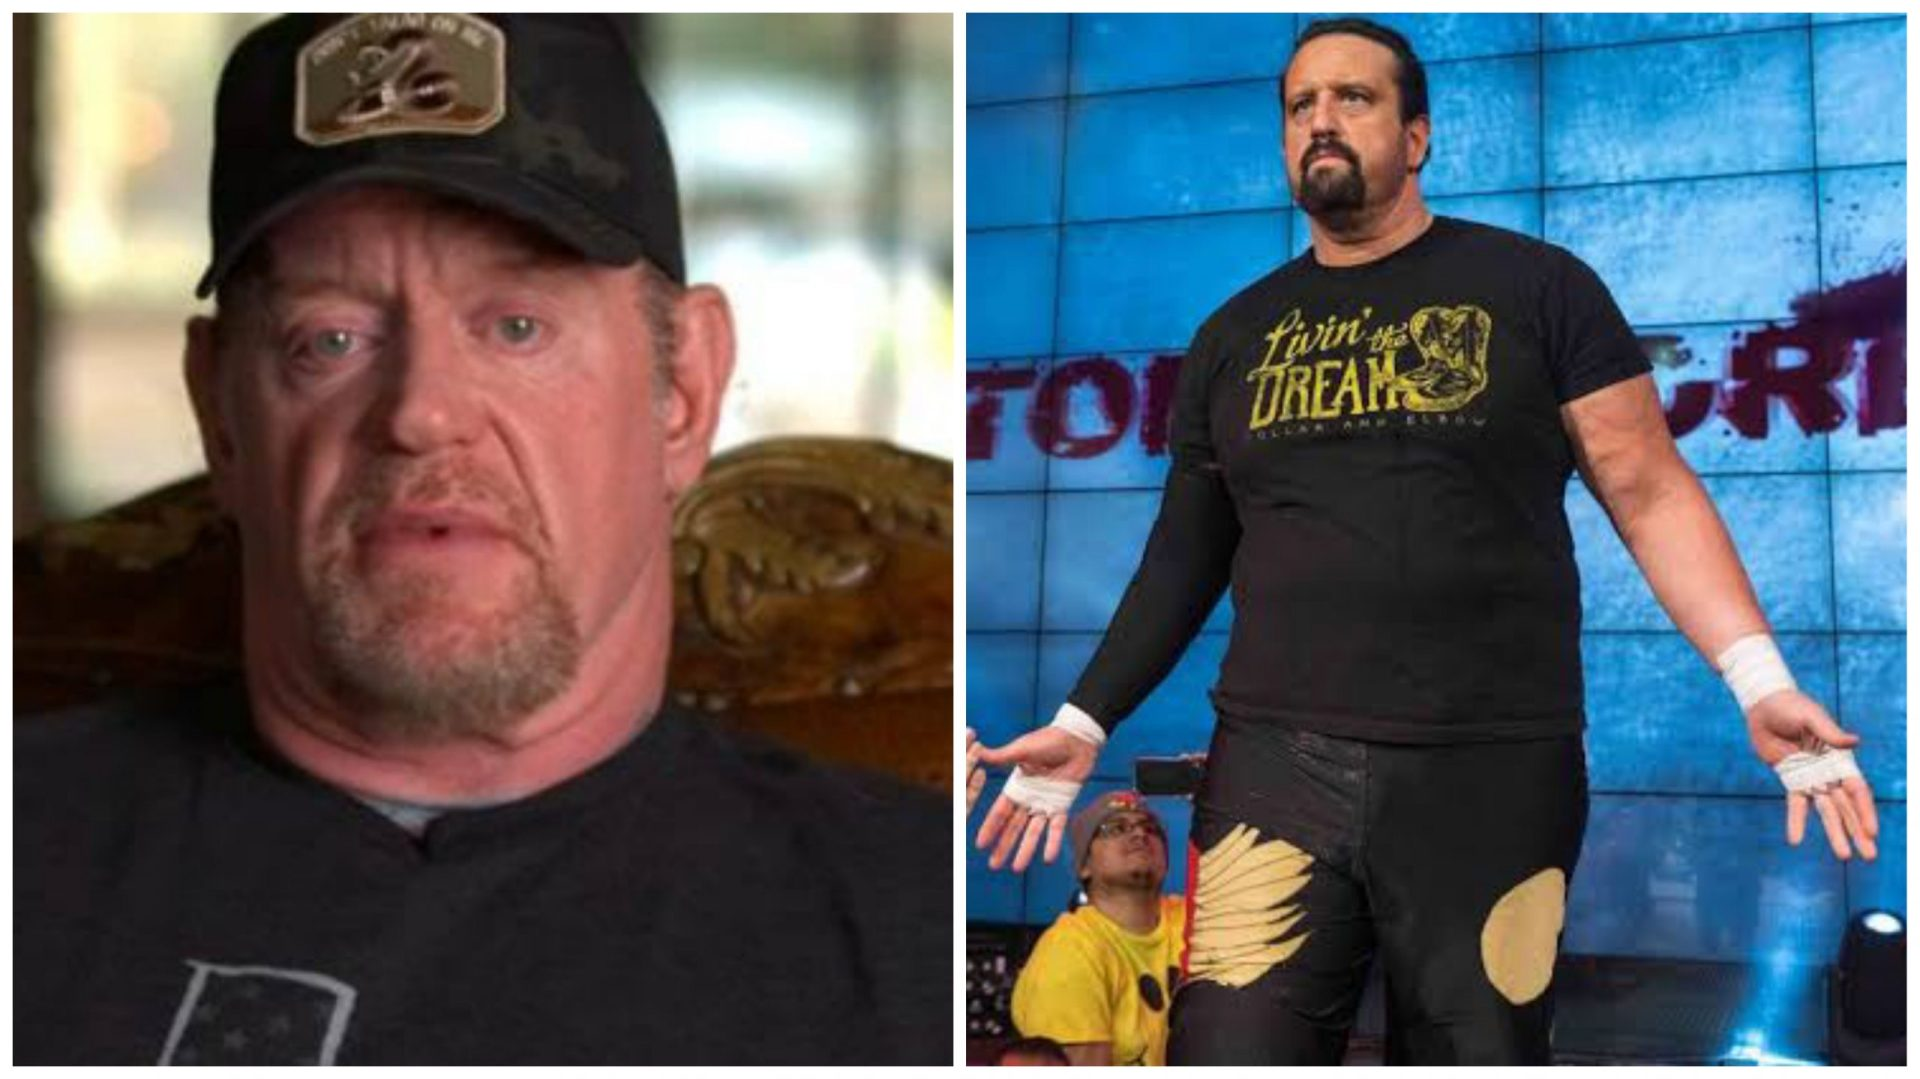 Tommy Dreamer reacts to The Undertaker's opinion of pro-wrestling going soft - THE SPORTS ROOM